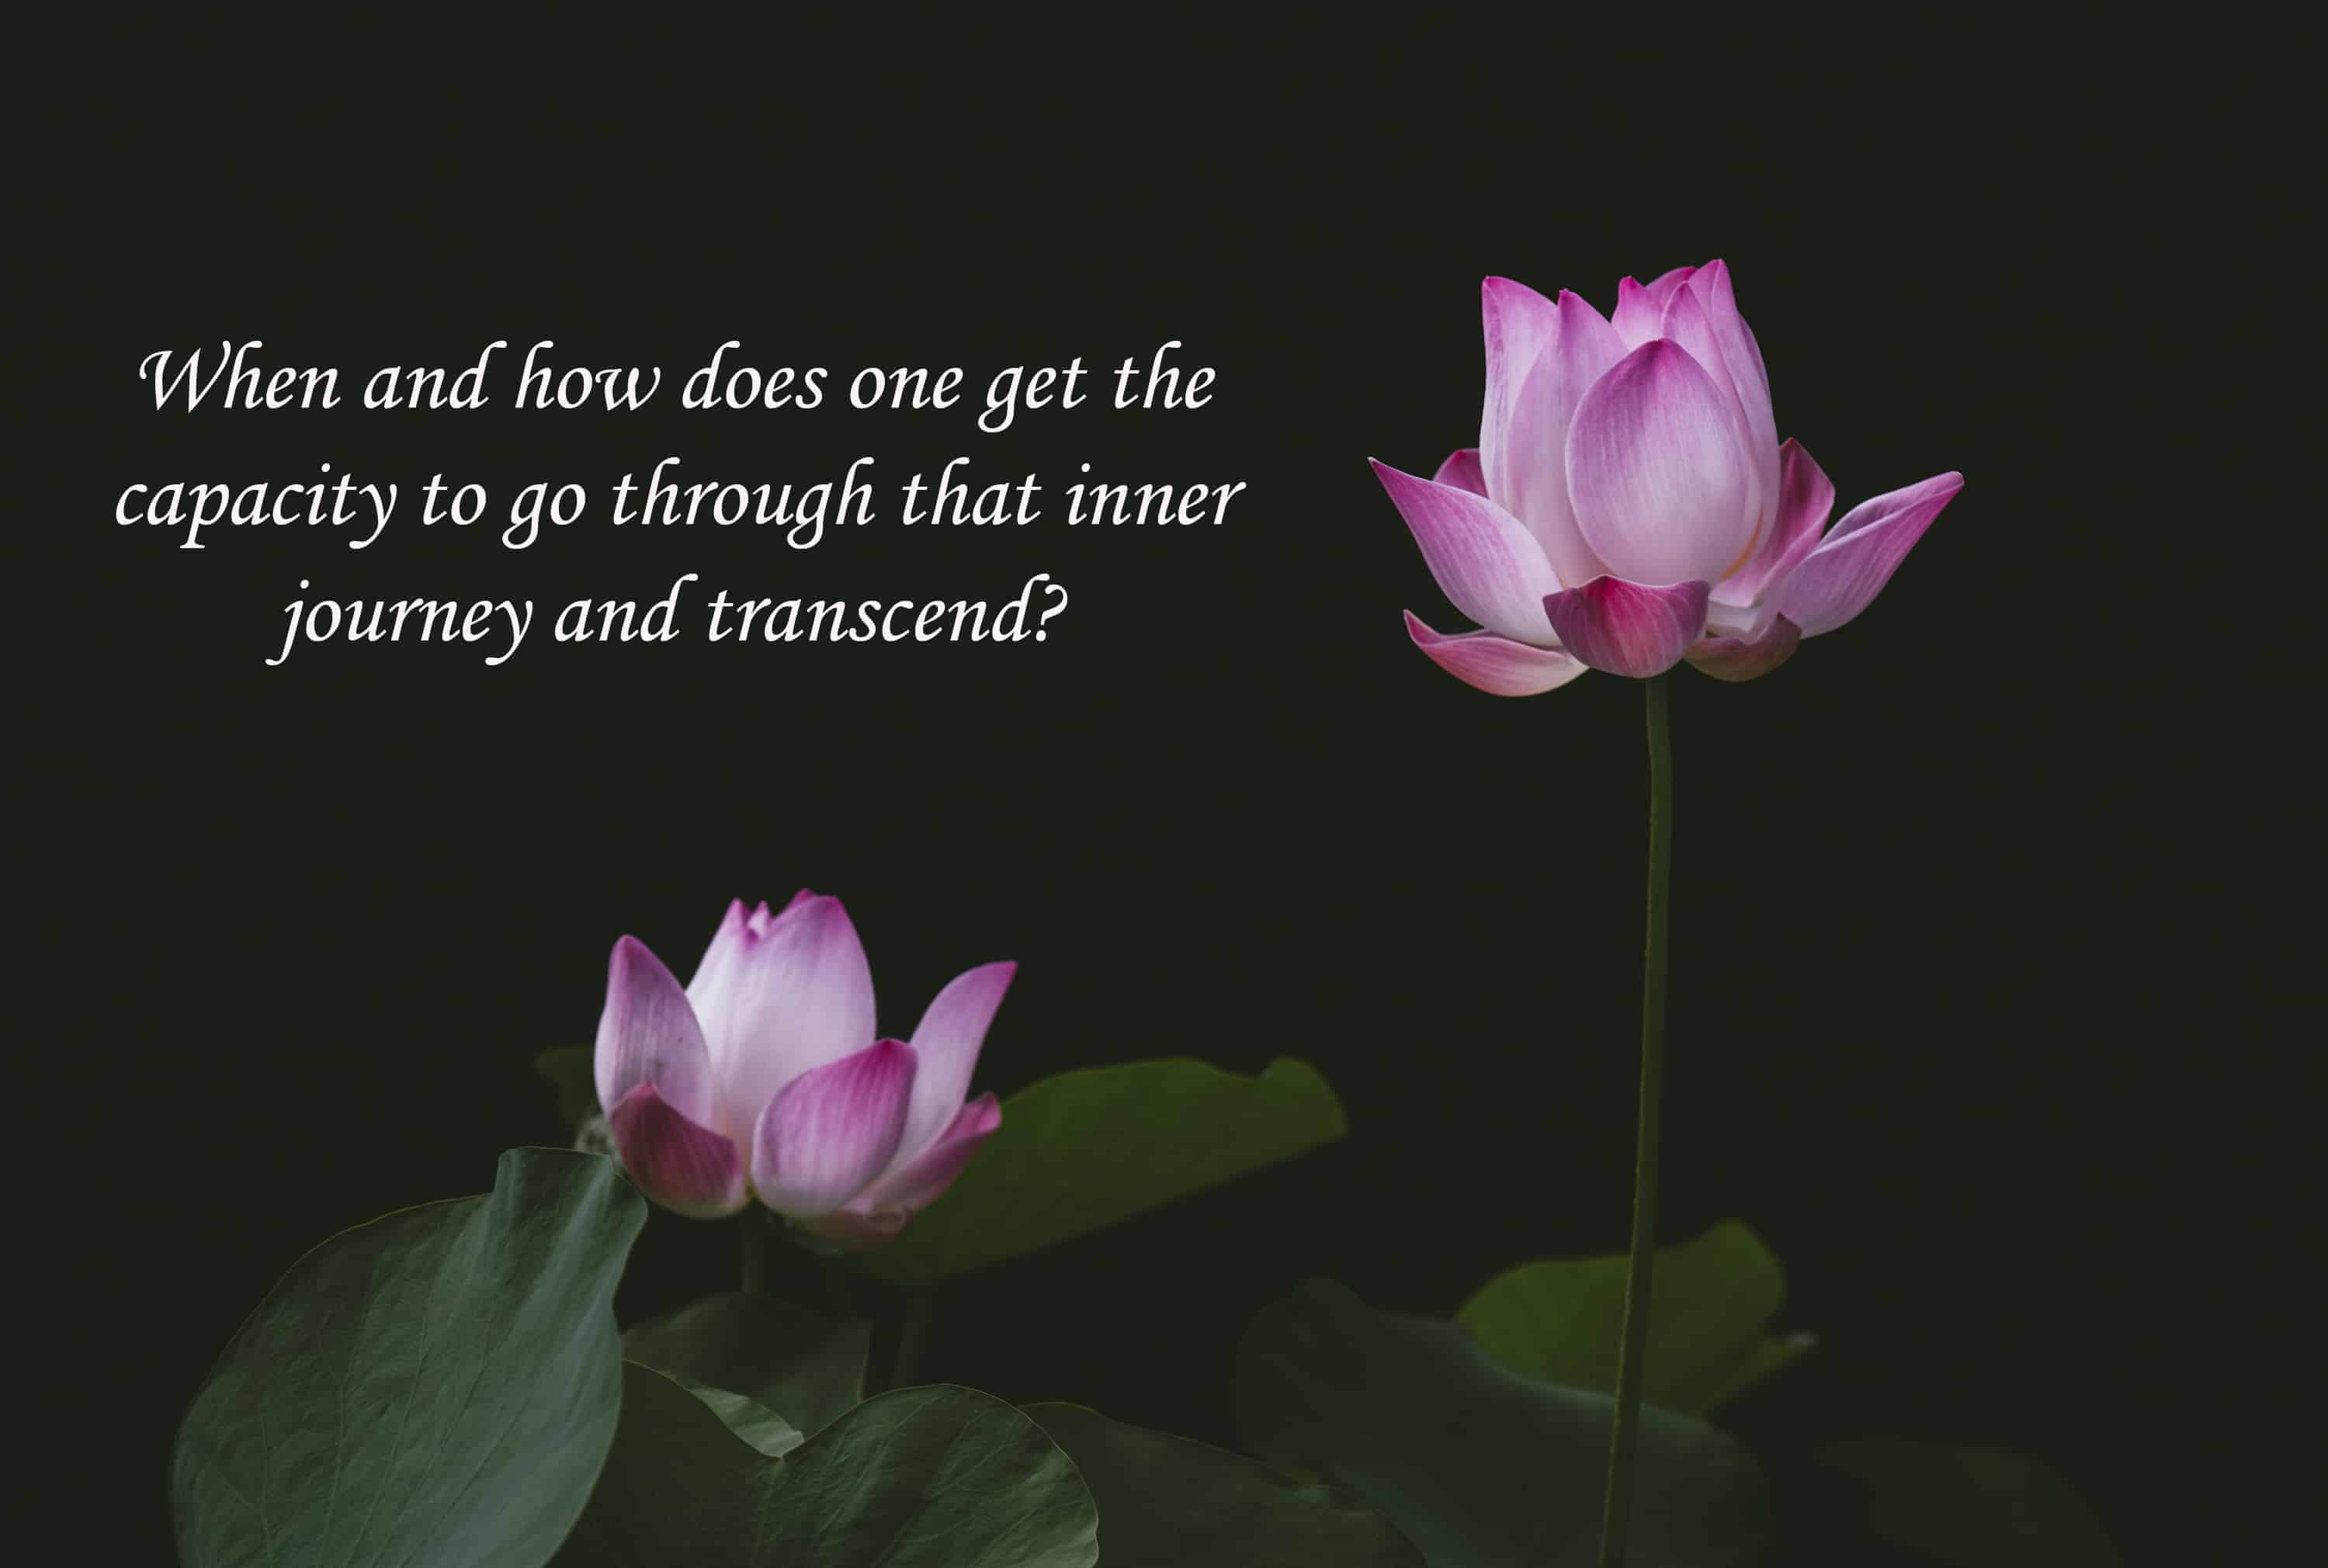 Learn more about your journey at http://www.saradachiruvolu.com #meditation #self_realization #welln